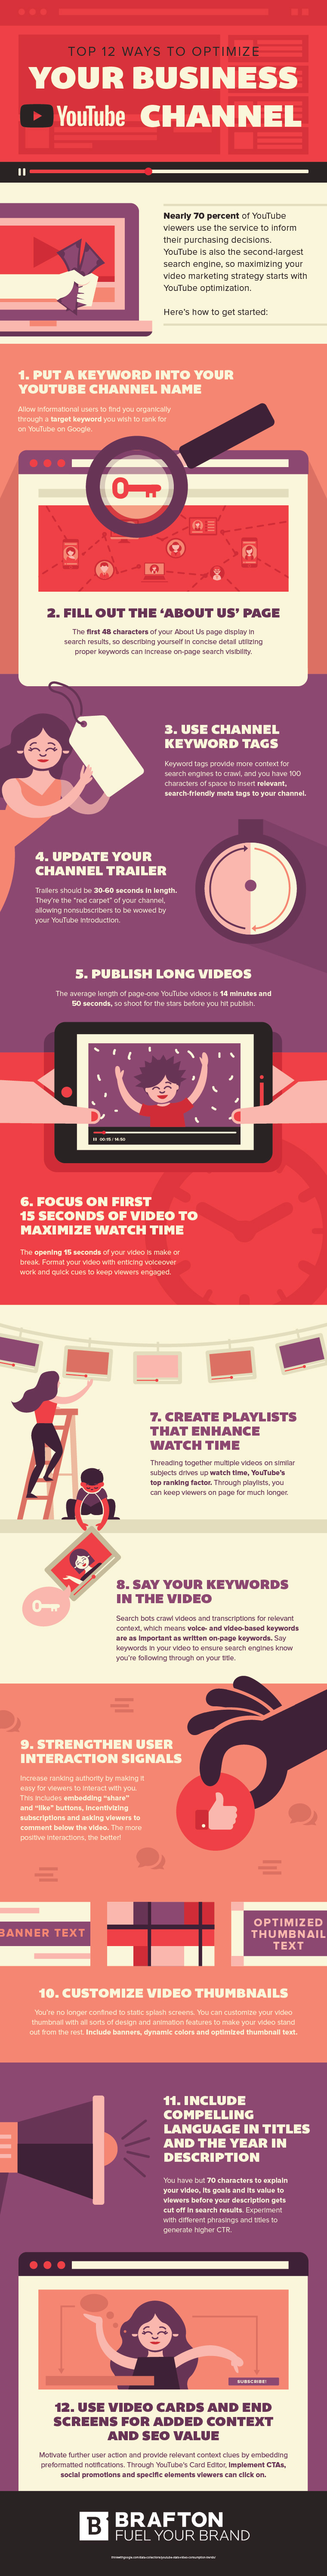 Top 12 ways to optimize your business youtube channel brafton how to optimize your business youtube channel reheart Image collections